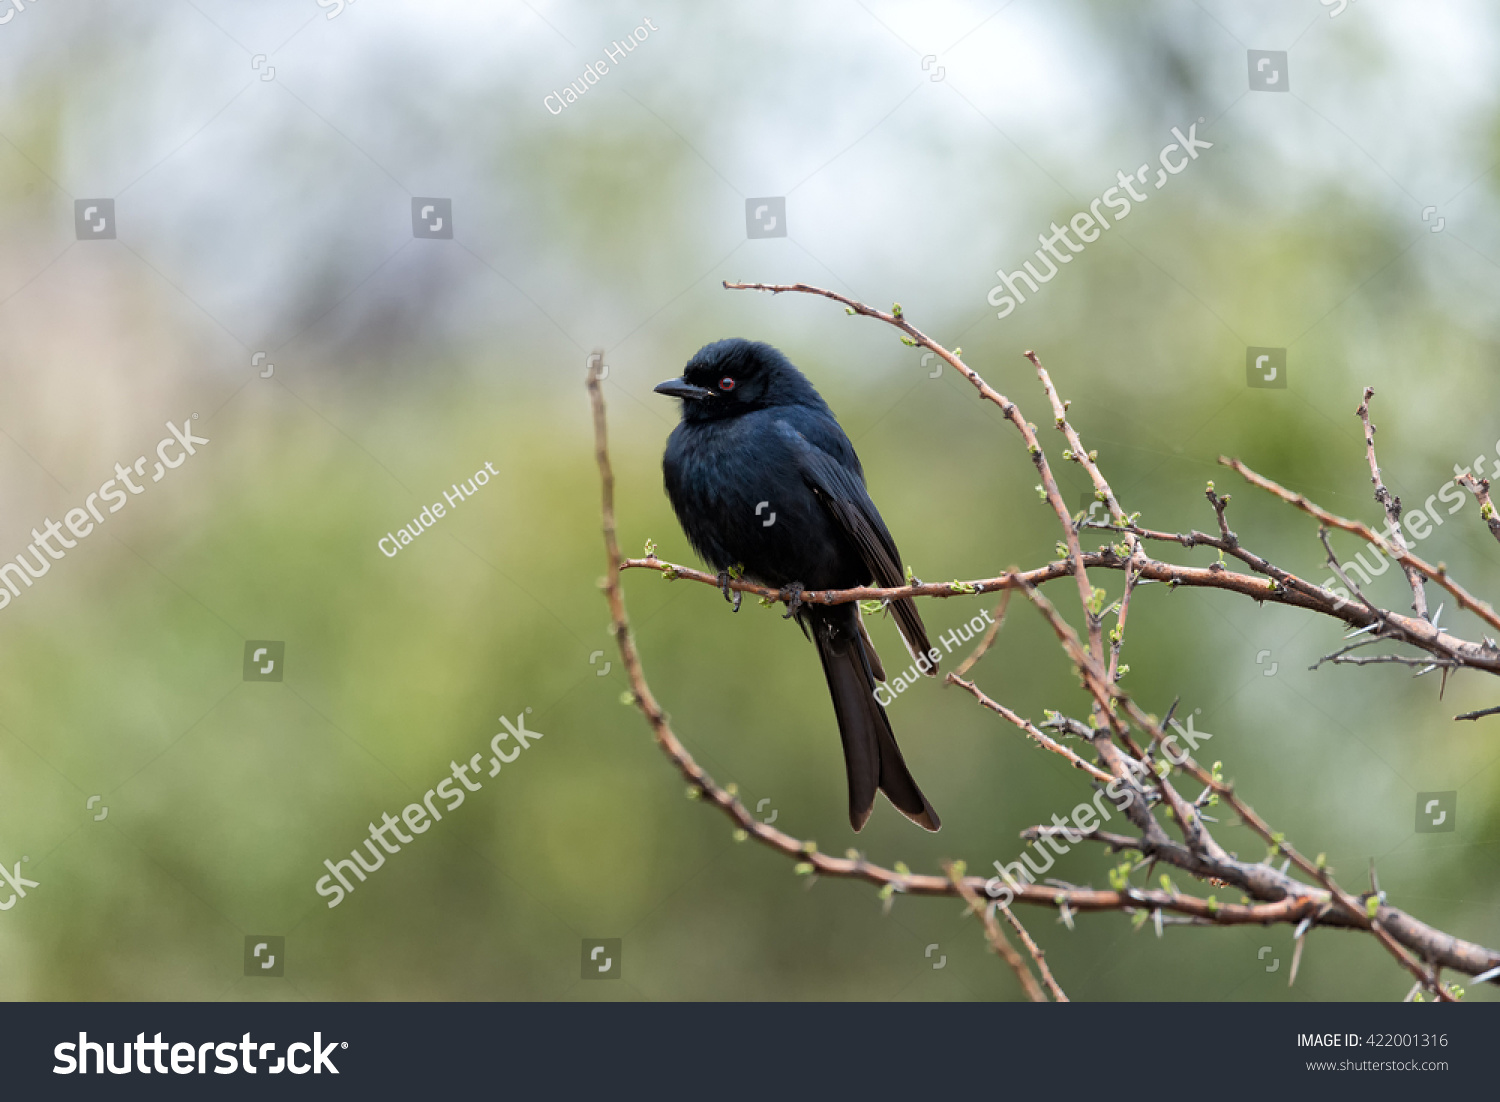 Fork-tailed drongo (Dicrurus adsimilis) perched on a branch in Pilanesberg National Park and Game Reserve, South Africa